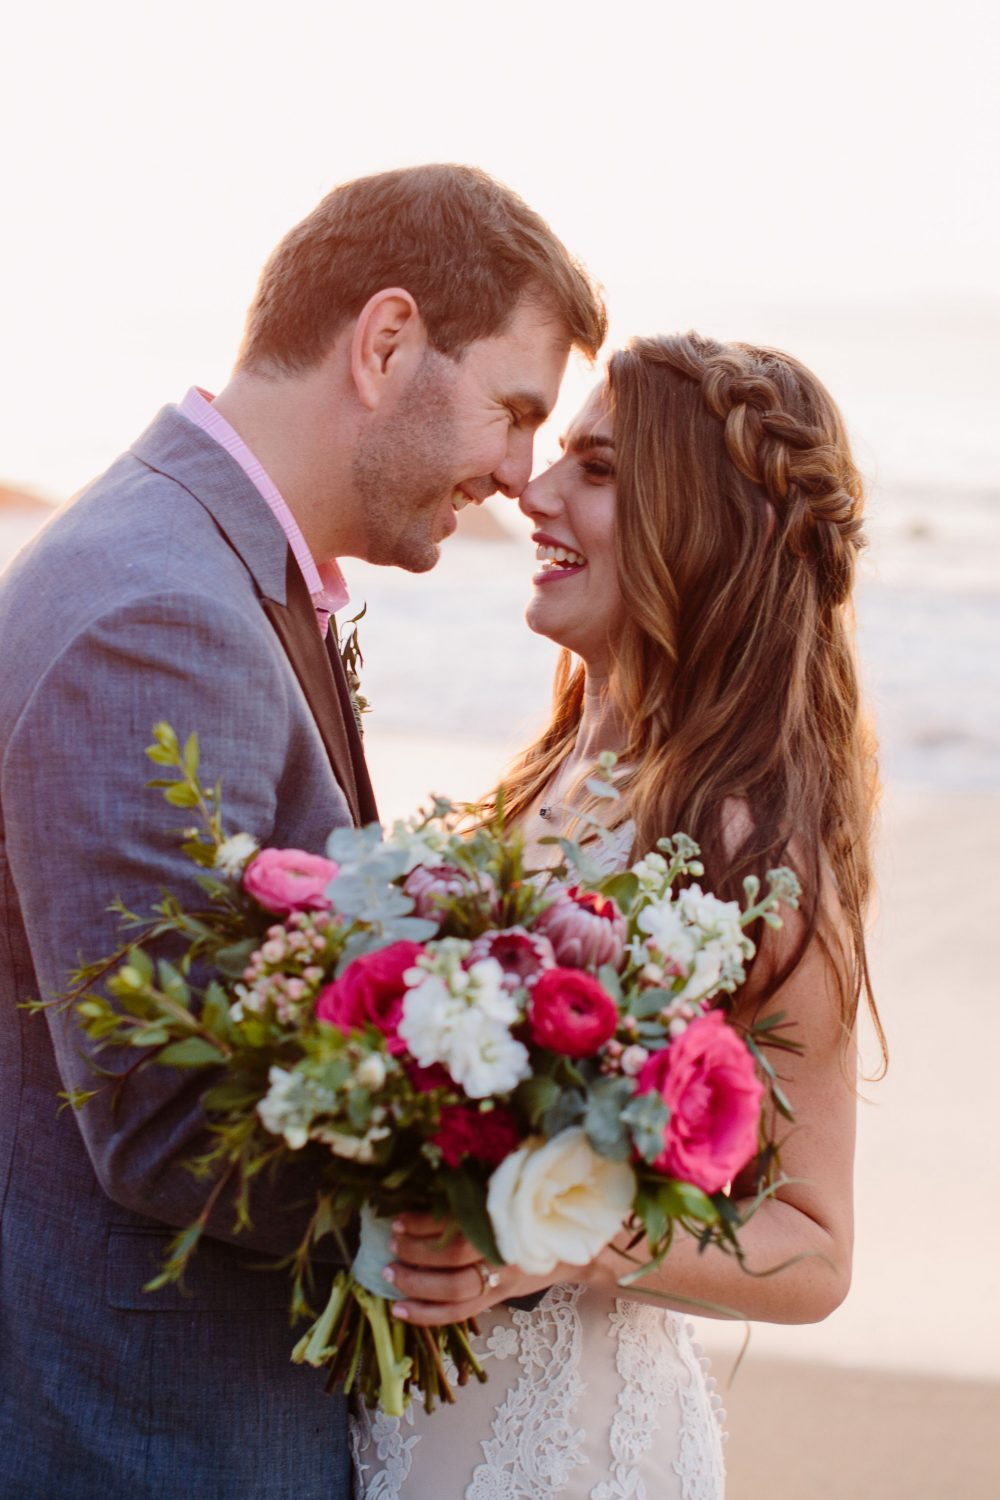 he bride with a boho braid hairstyle and a beautiful pink white and greenery bouquet stands with her groom on the beach at this Sayulita Mexico destination wedding